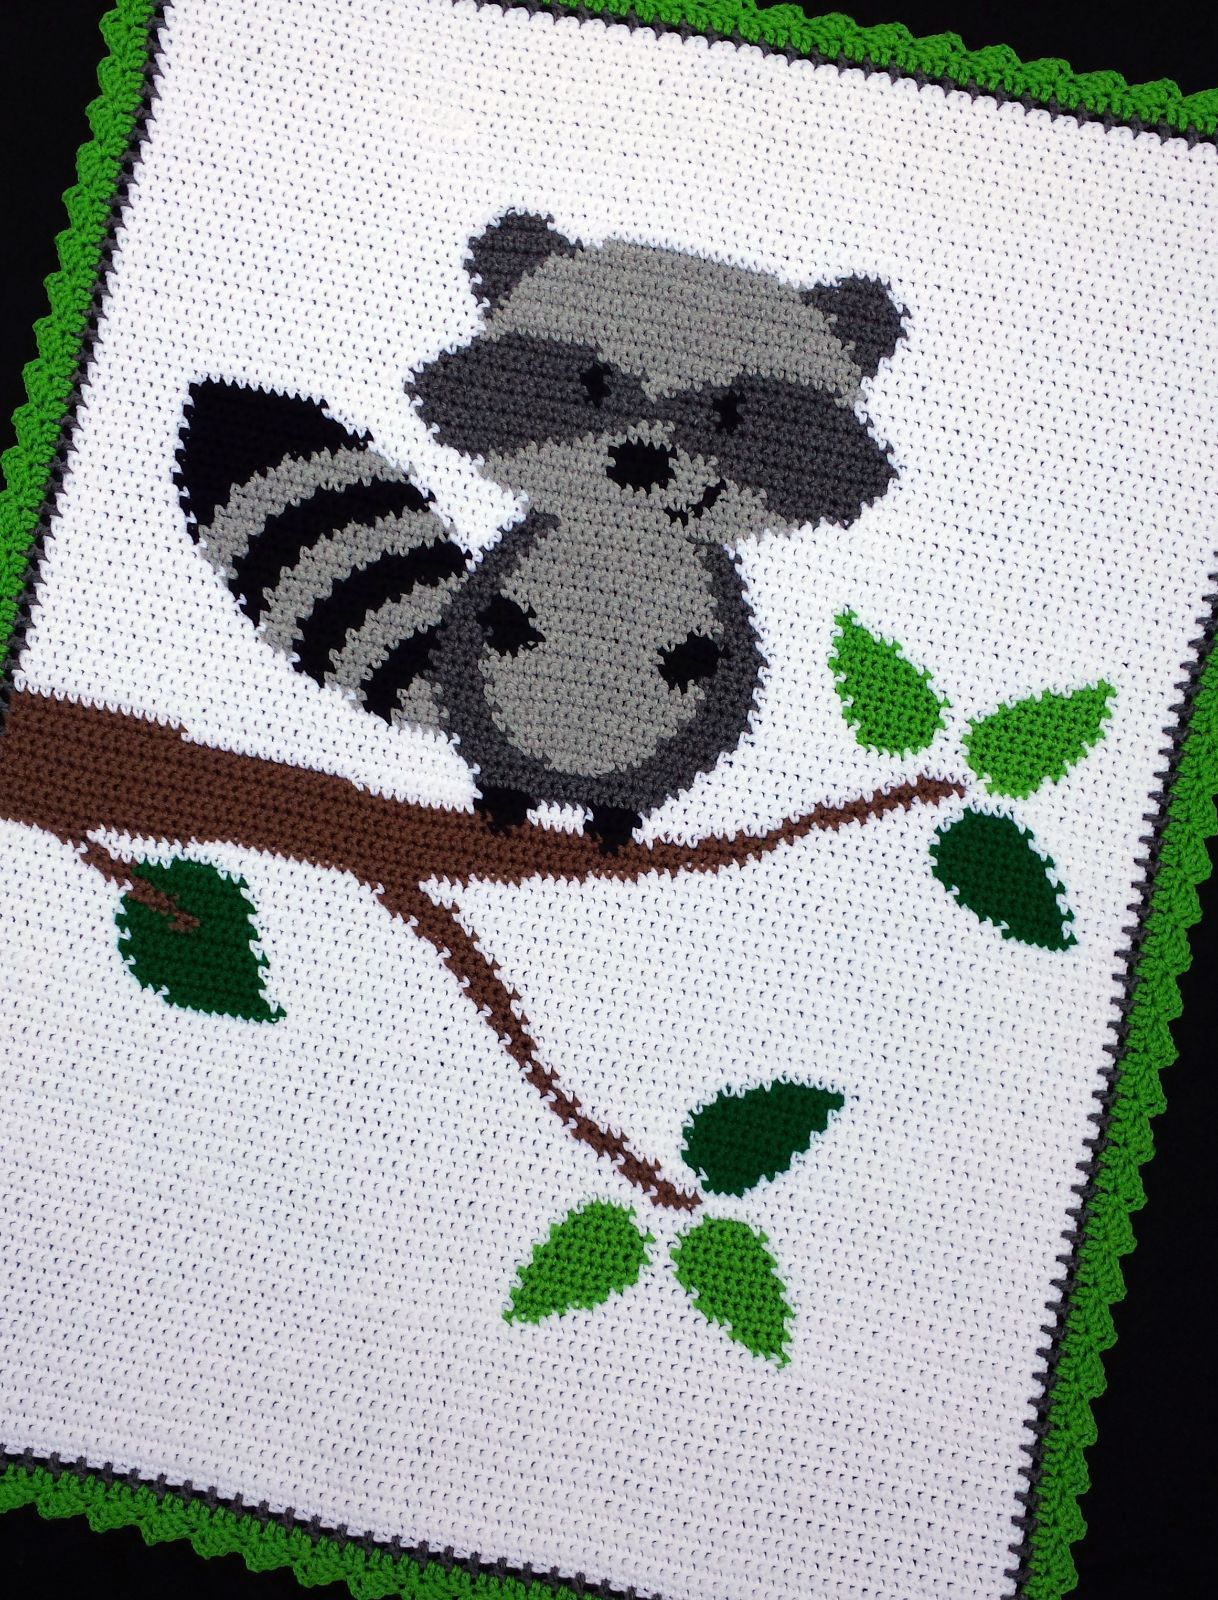 Crochet patterns raccoon in a tree woodlandforest baby afghan crochet patterns raccoon in a tree woodlandforest baby afghan pattern easy bankloansurffo Images